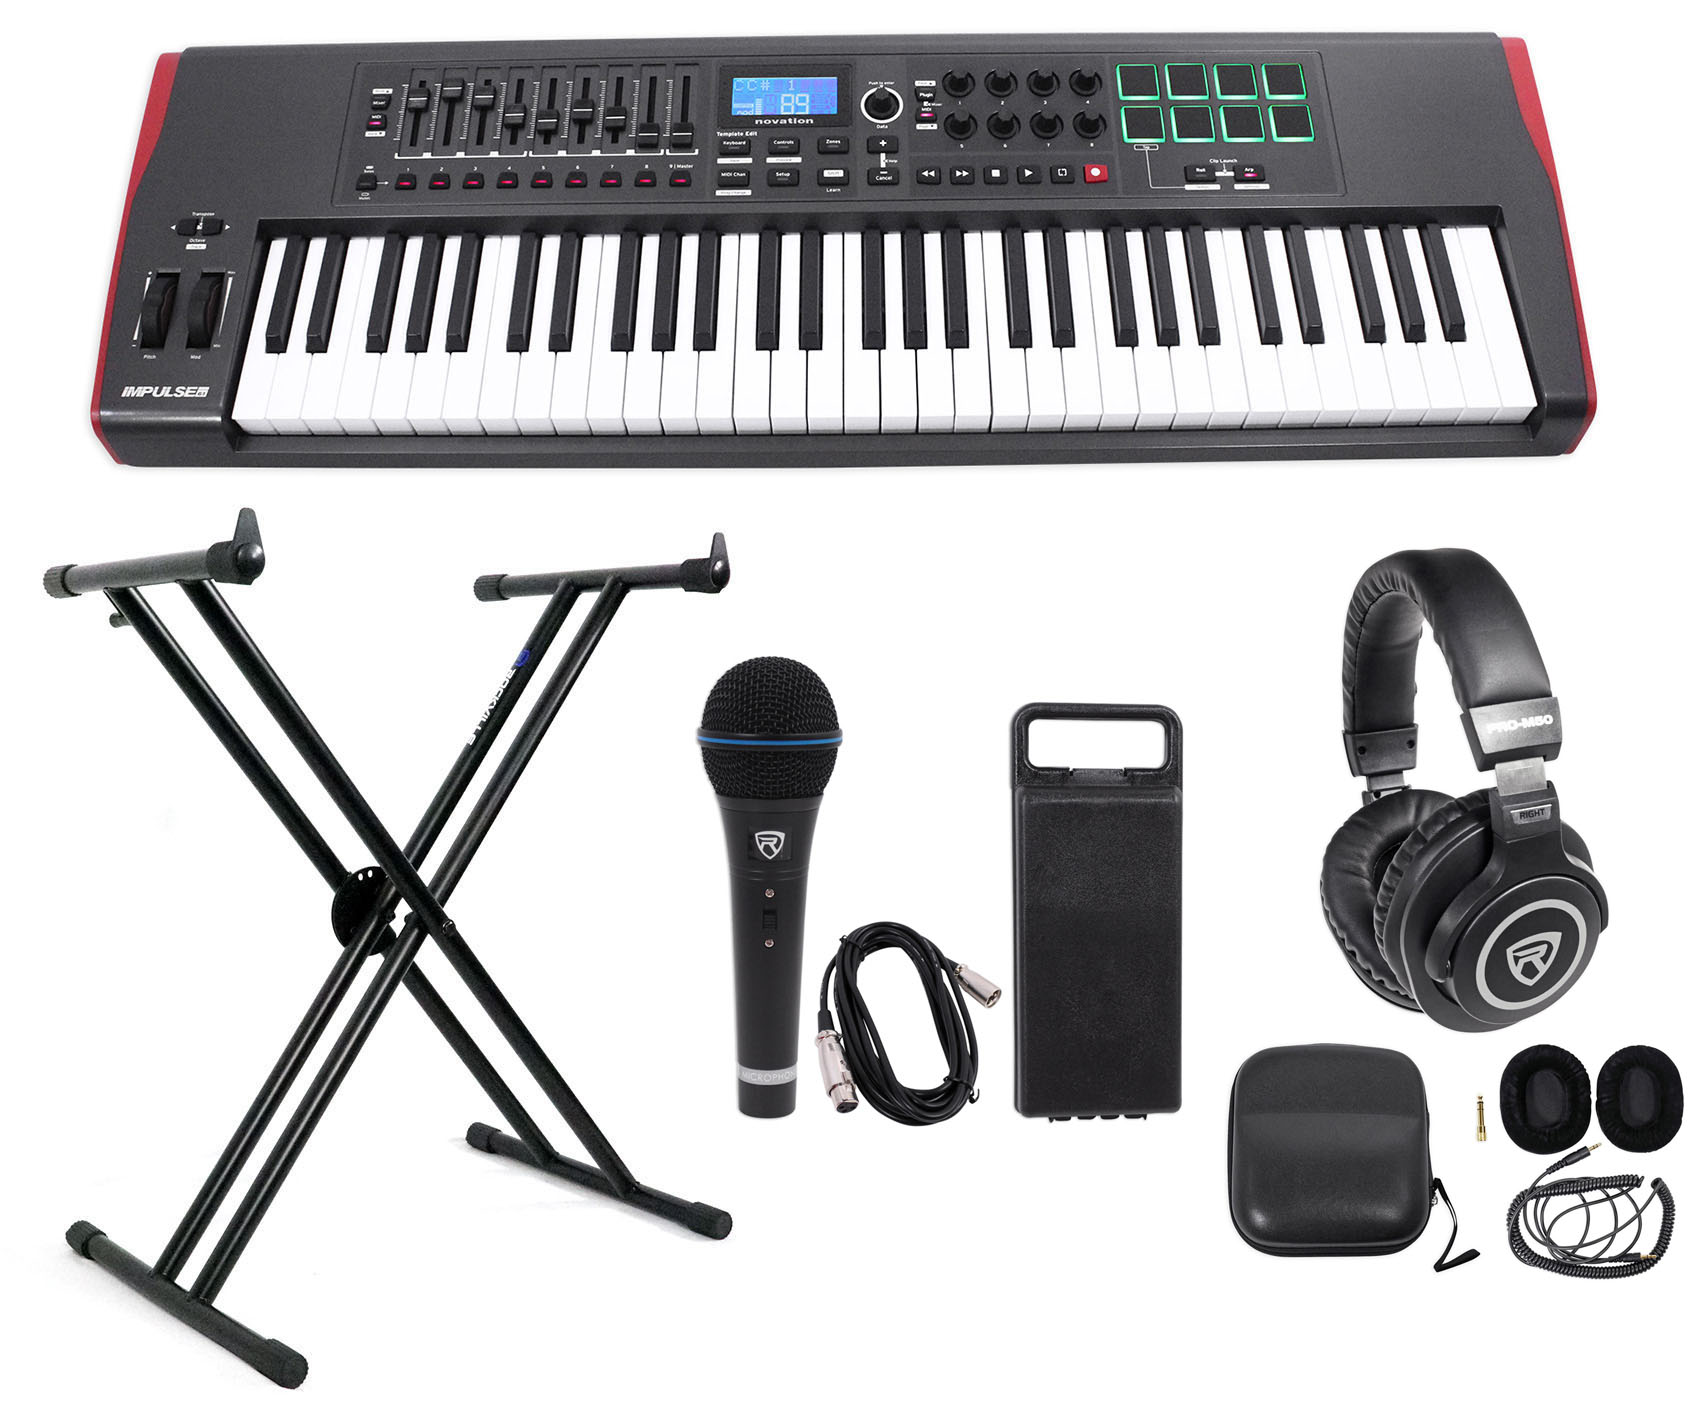 Novation IMPULSE 61-Key Ableton Live Keyboard Controller+Stand+Headphones+Mic by NOVATION